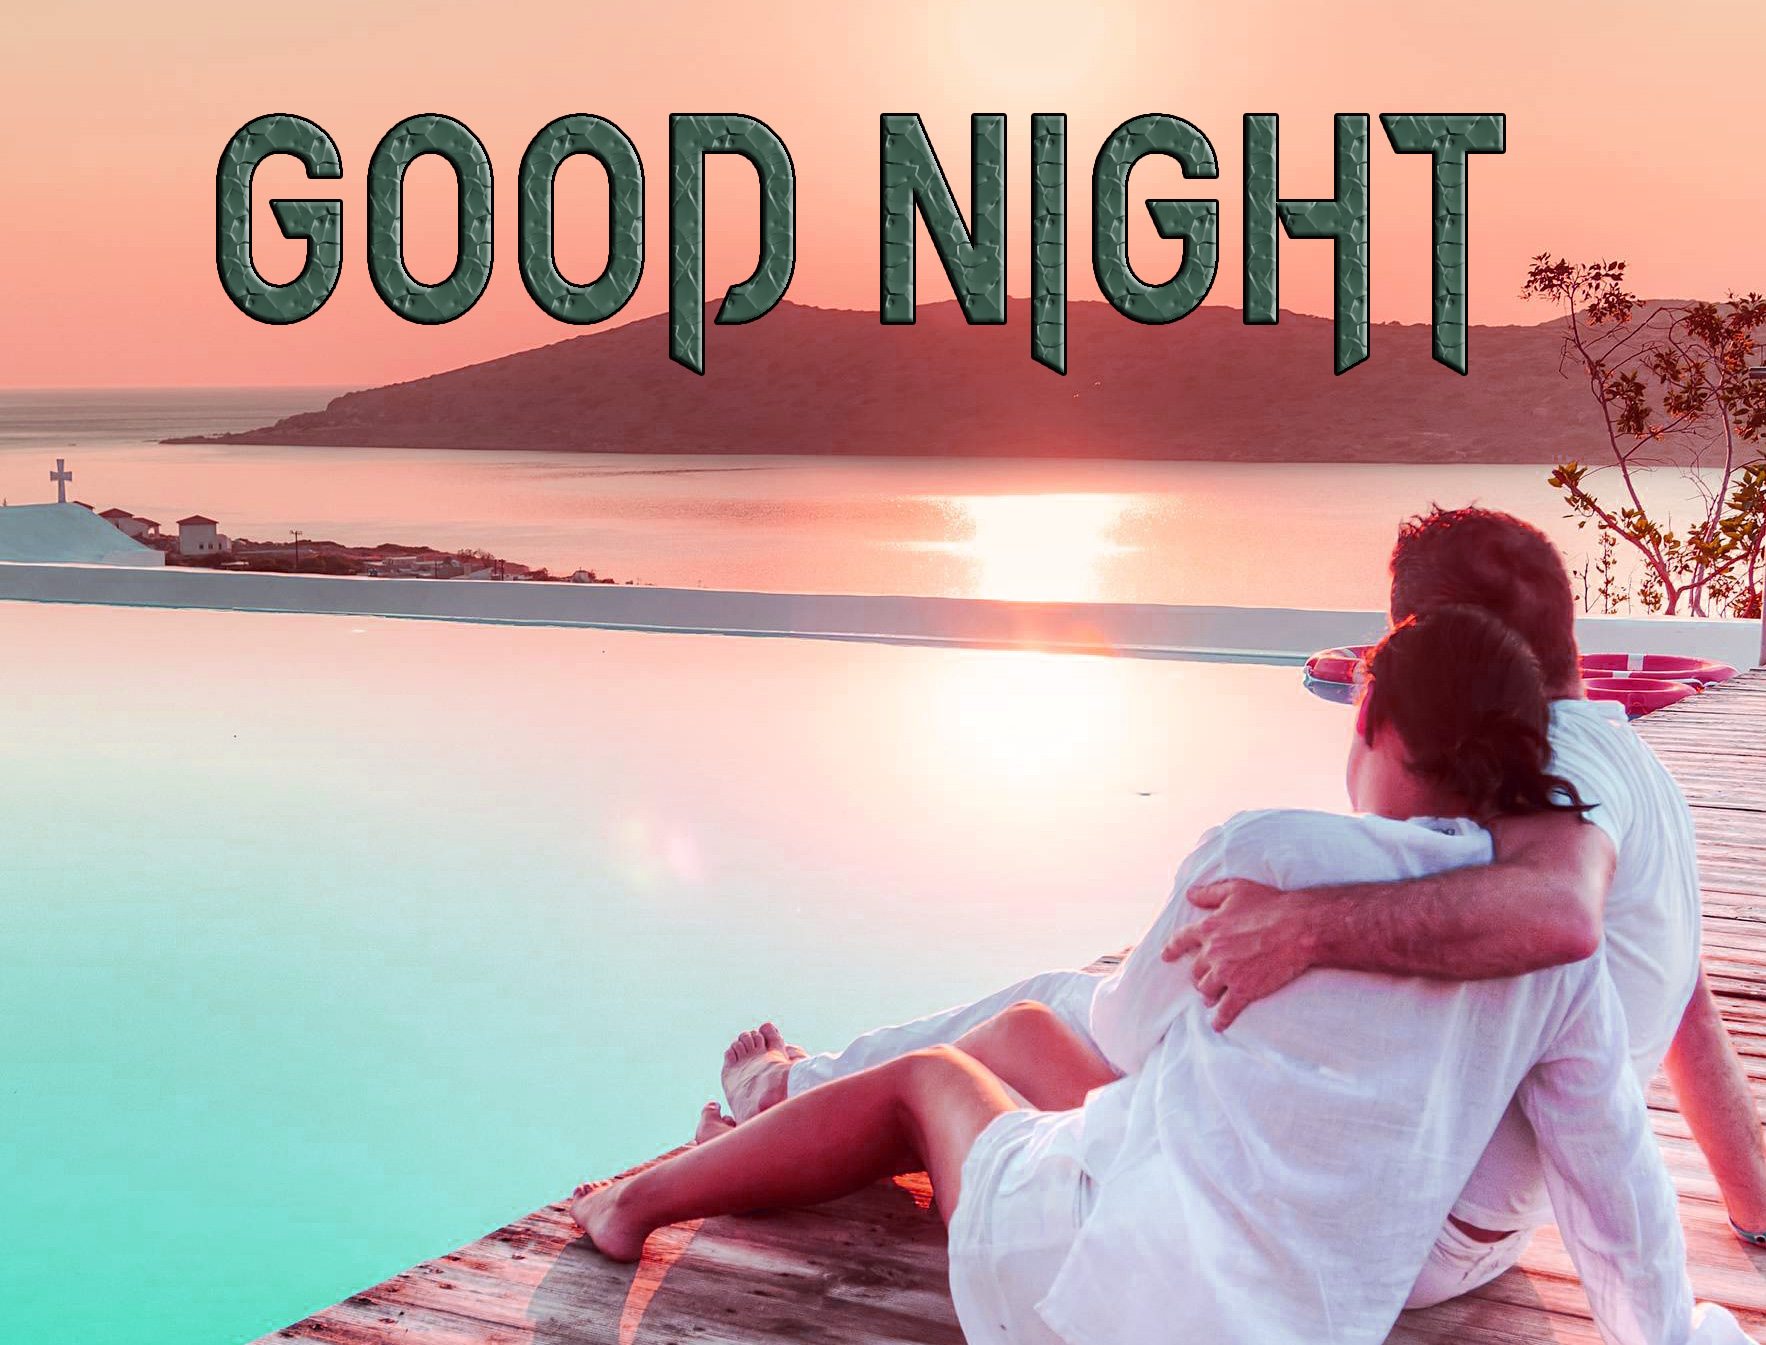 GOOD NIGHT IMAGES FOR LOVER / LOVE COUPLE  IMAGES WALLPAPER PICS WITH COUPLE